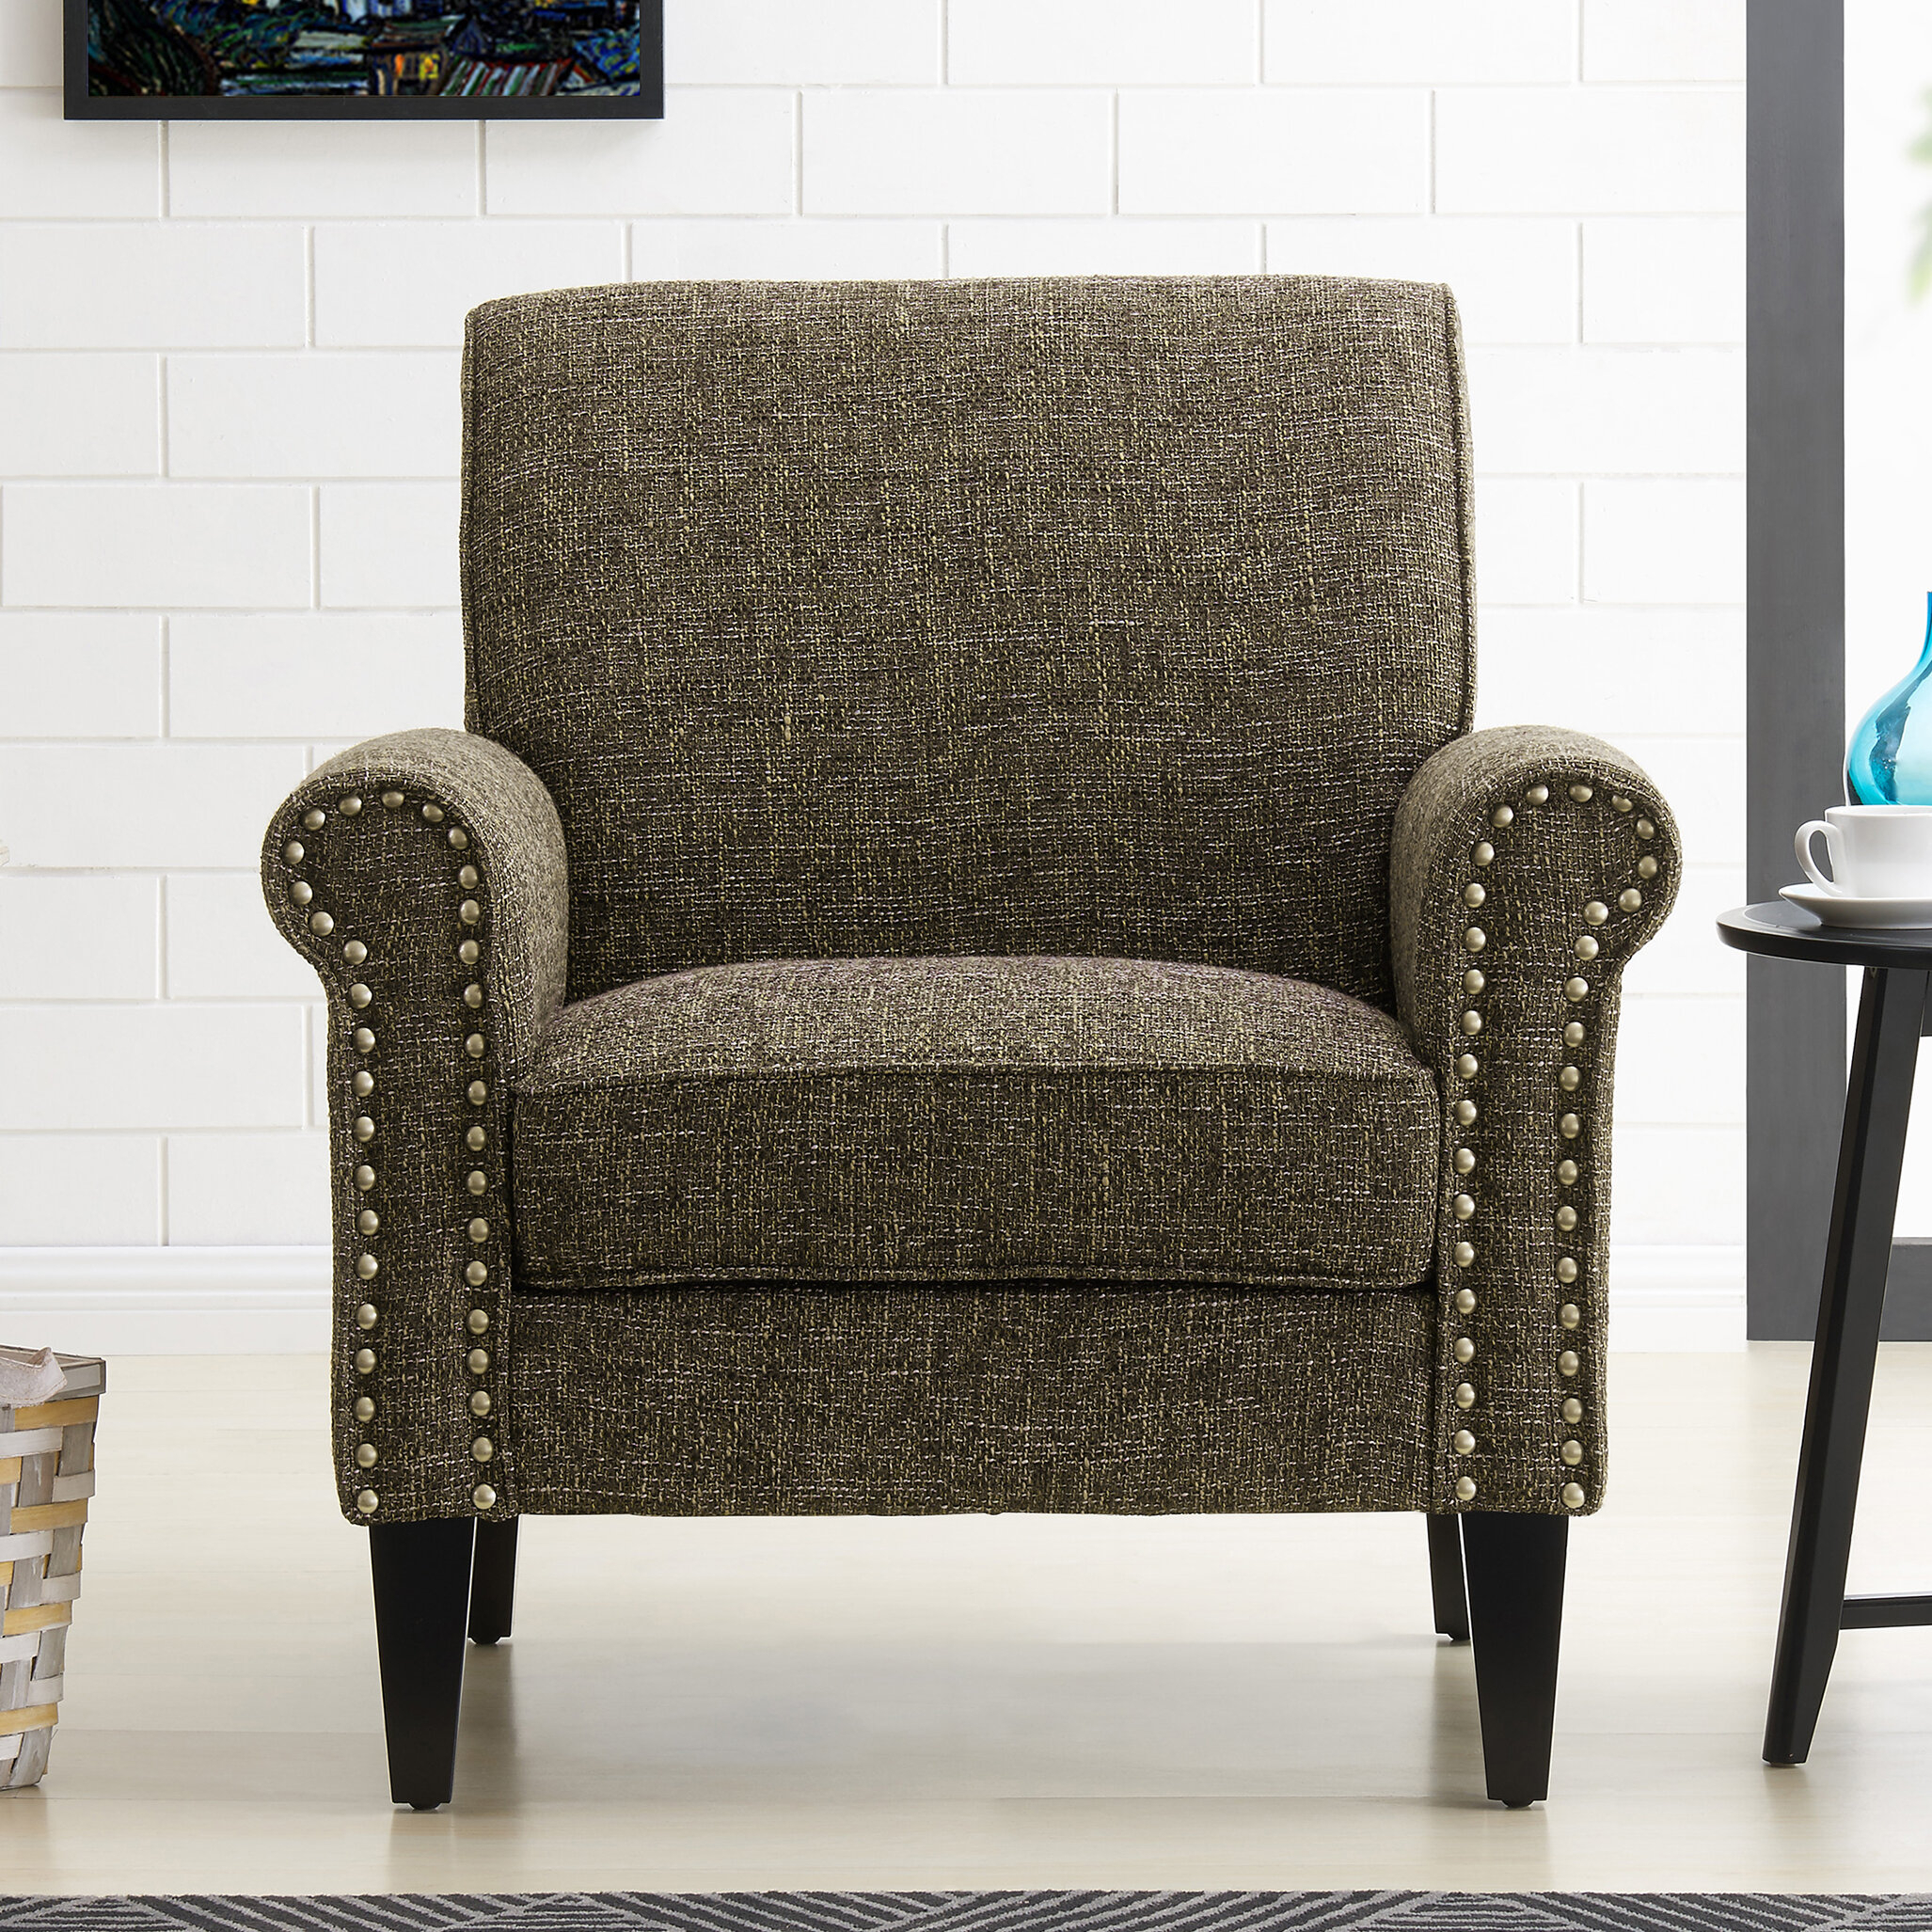 Pitts Armchair With Pitts Armchairs (View 2 of 15)